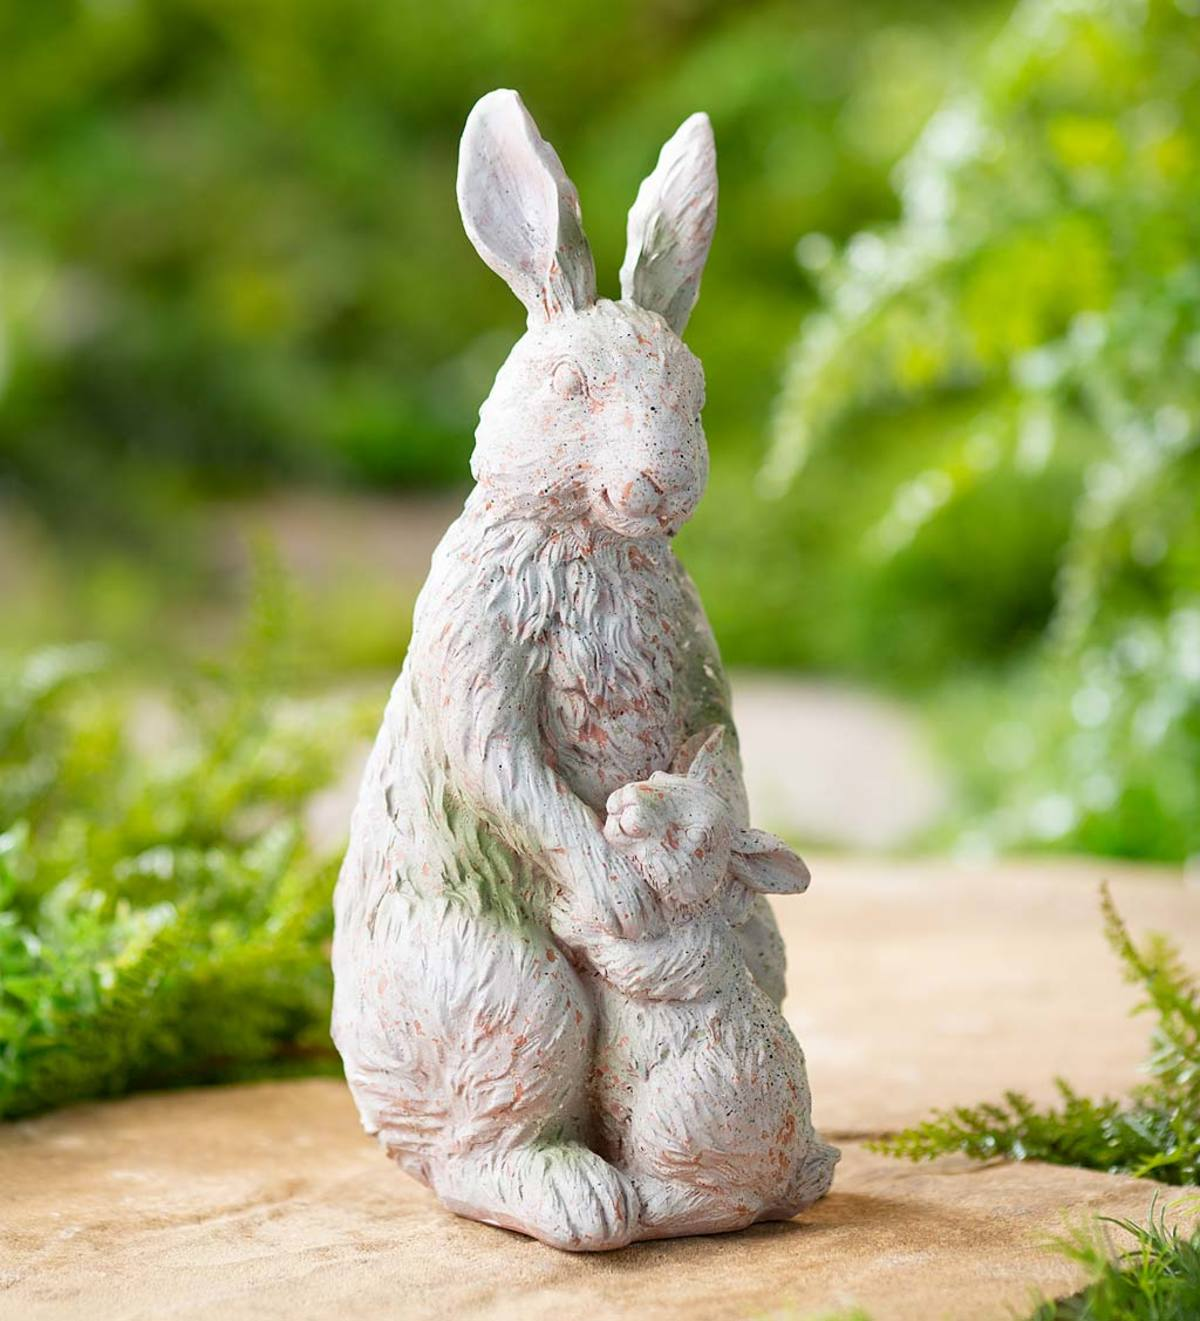 Indoor/Outdoor Sculpture of a Mother Rabbit With Her Baby